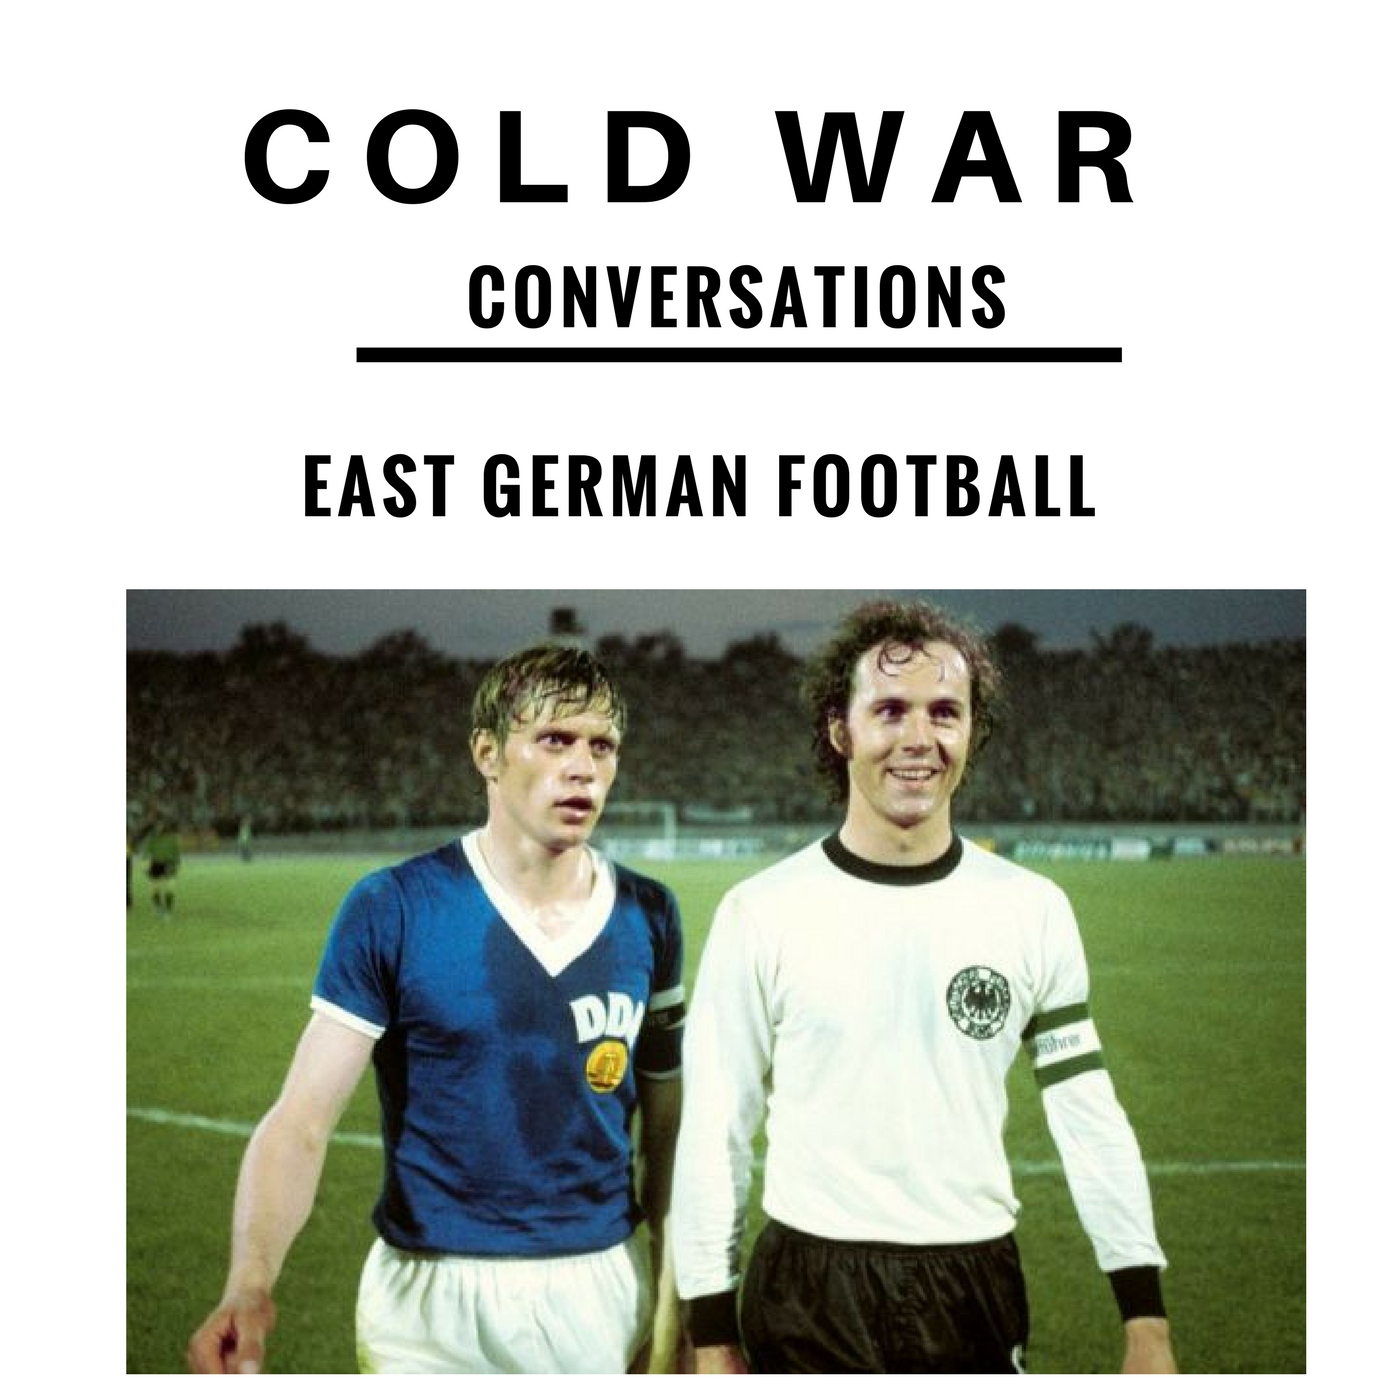 East German Football